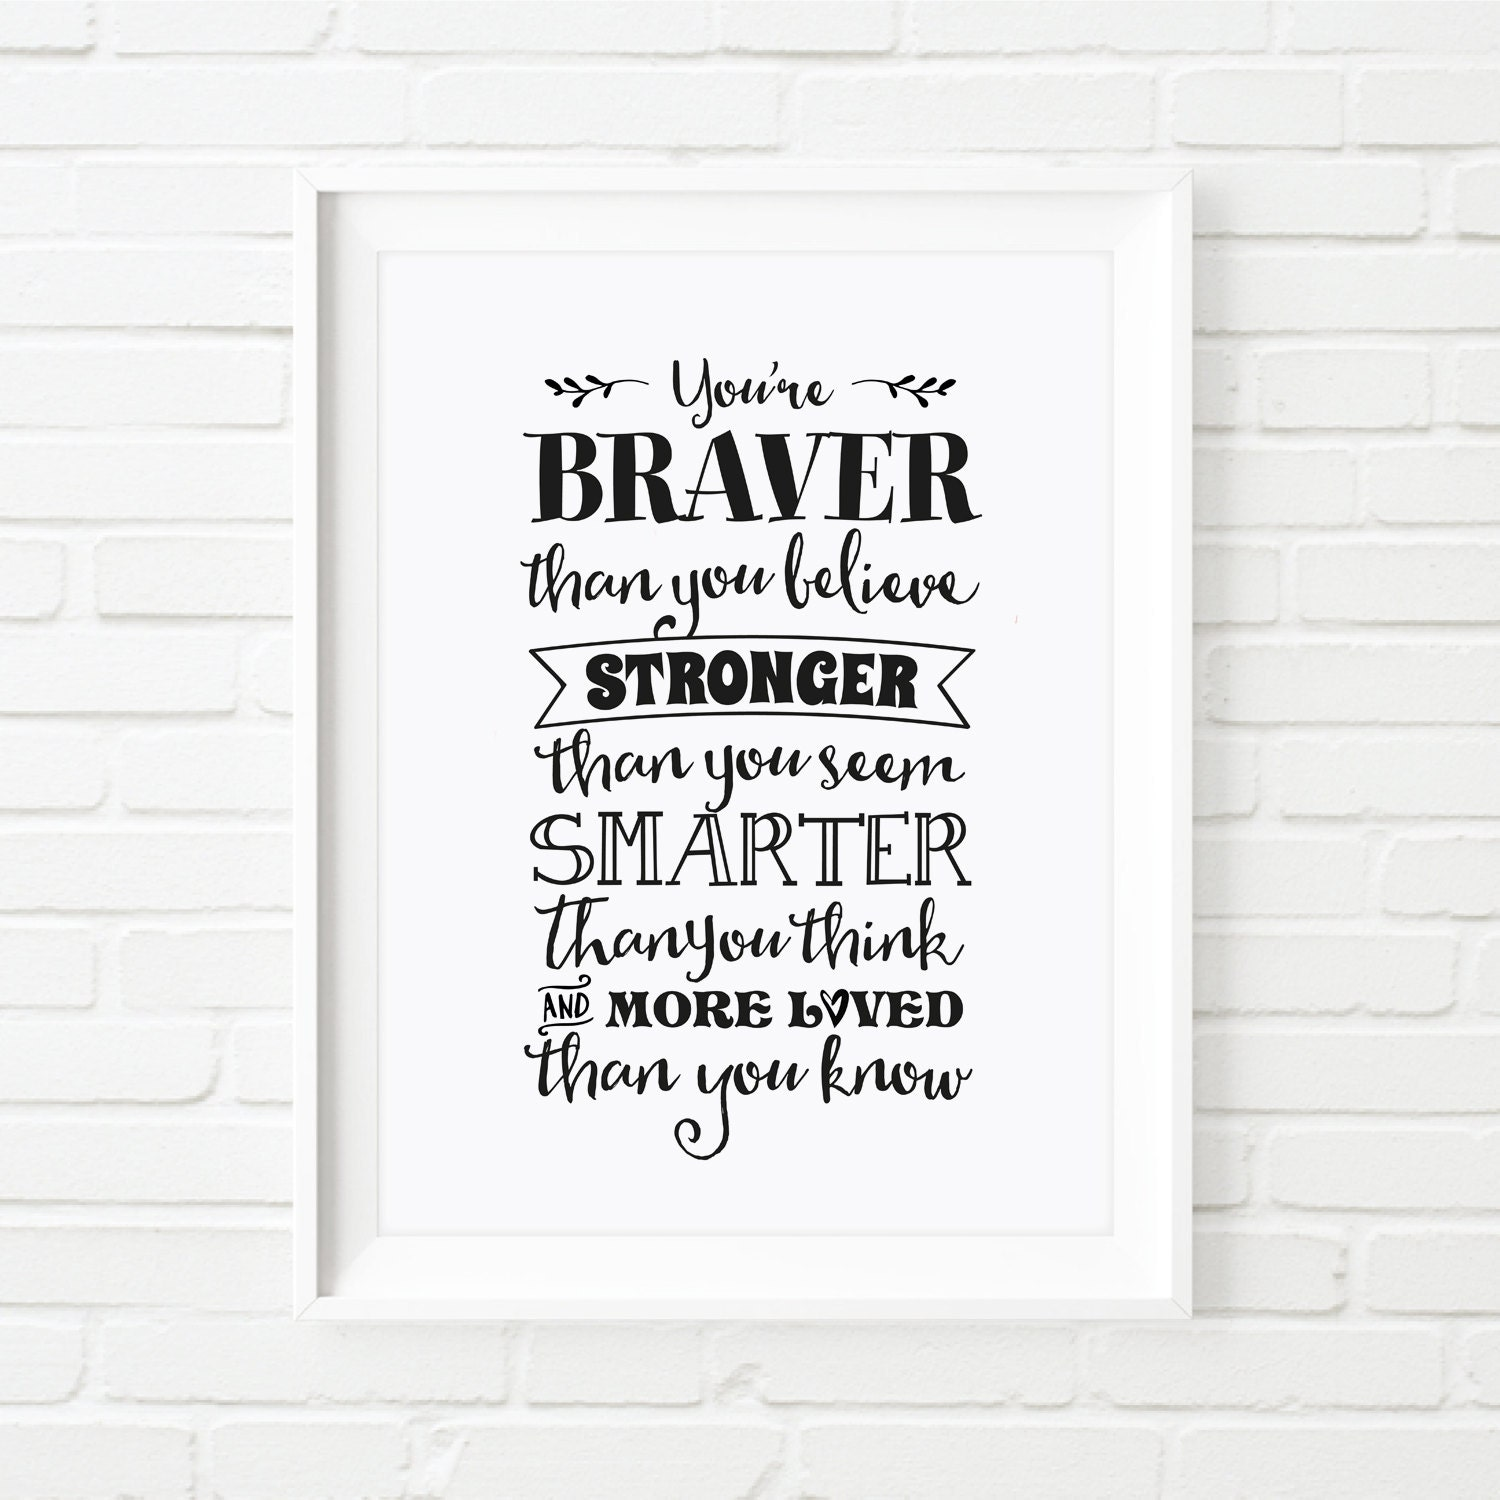 Winnie The Pooh Quote Art: Printable Art Winnie The Pooh Quote Youre Braver Than You